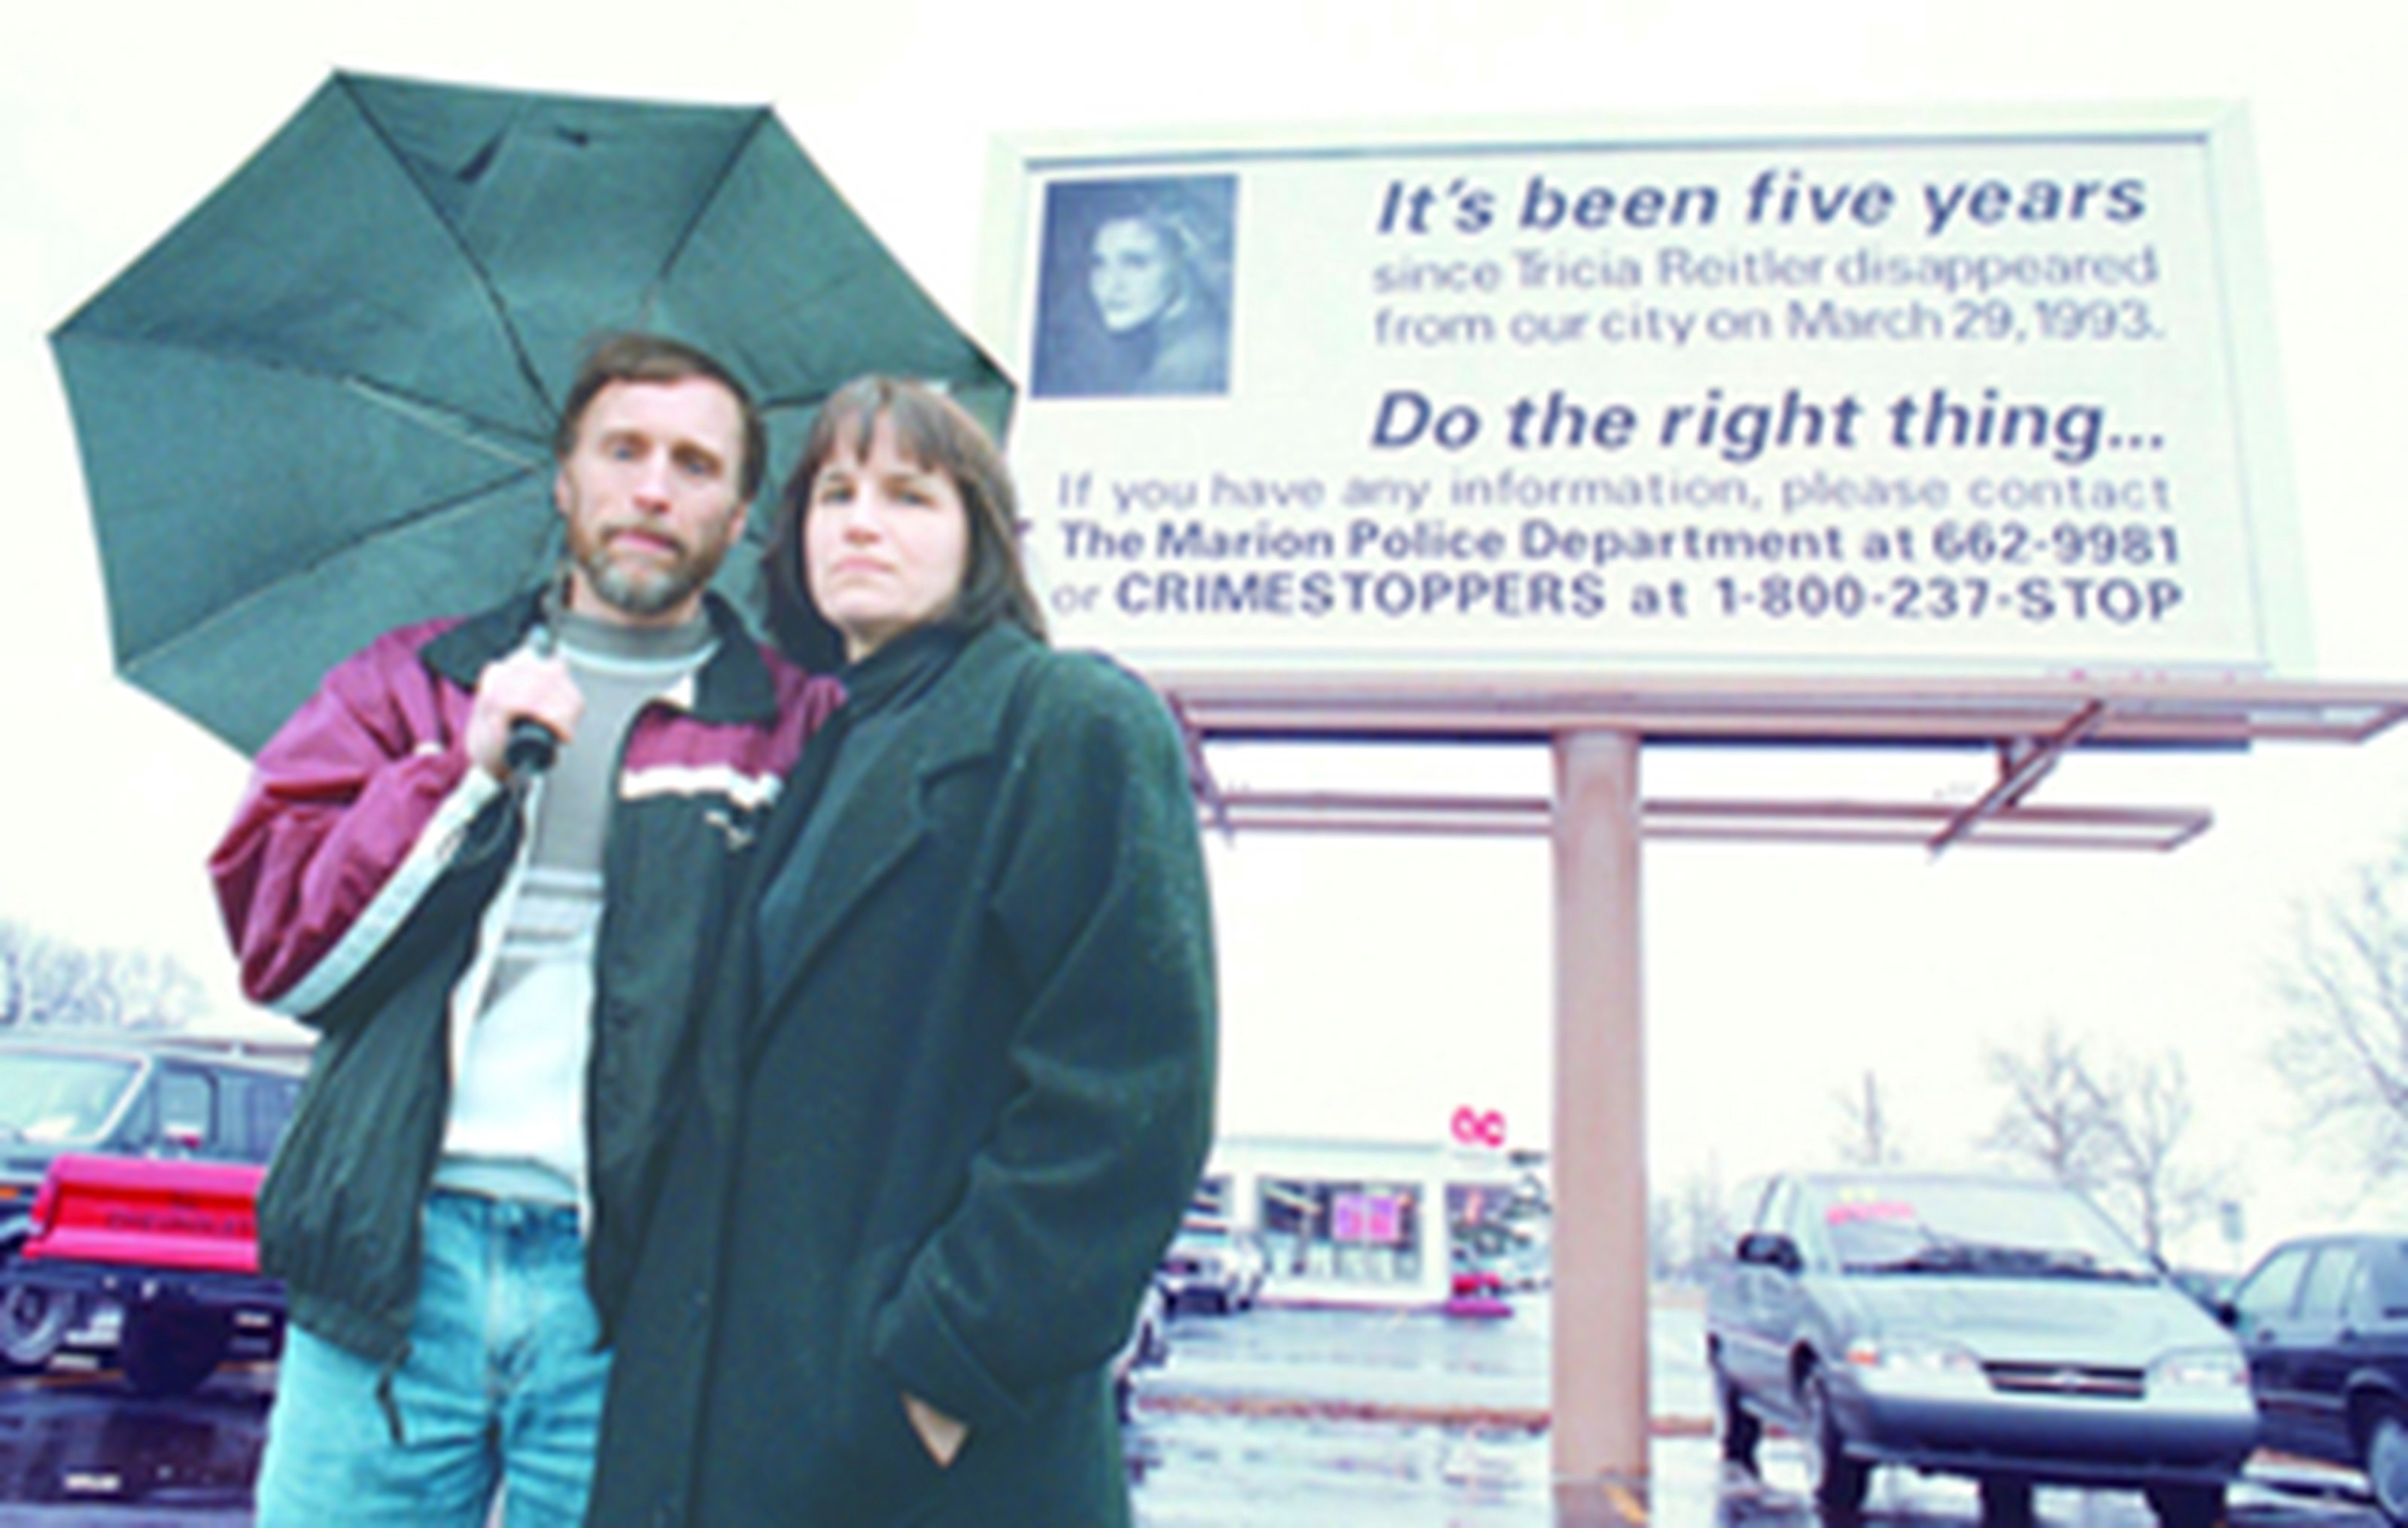 Tricia Reitler?s parents Garry and Donna standing in front of a billboard on 41st Street and Western Avenue.